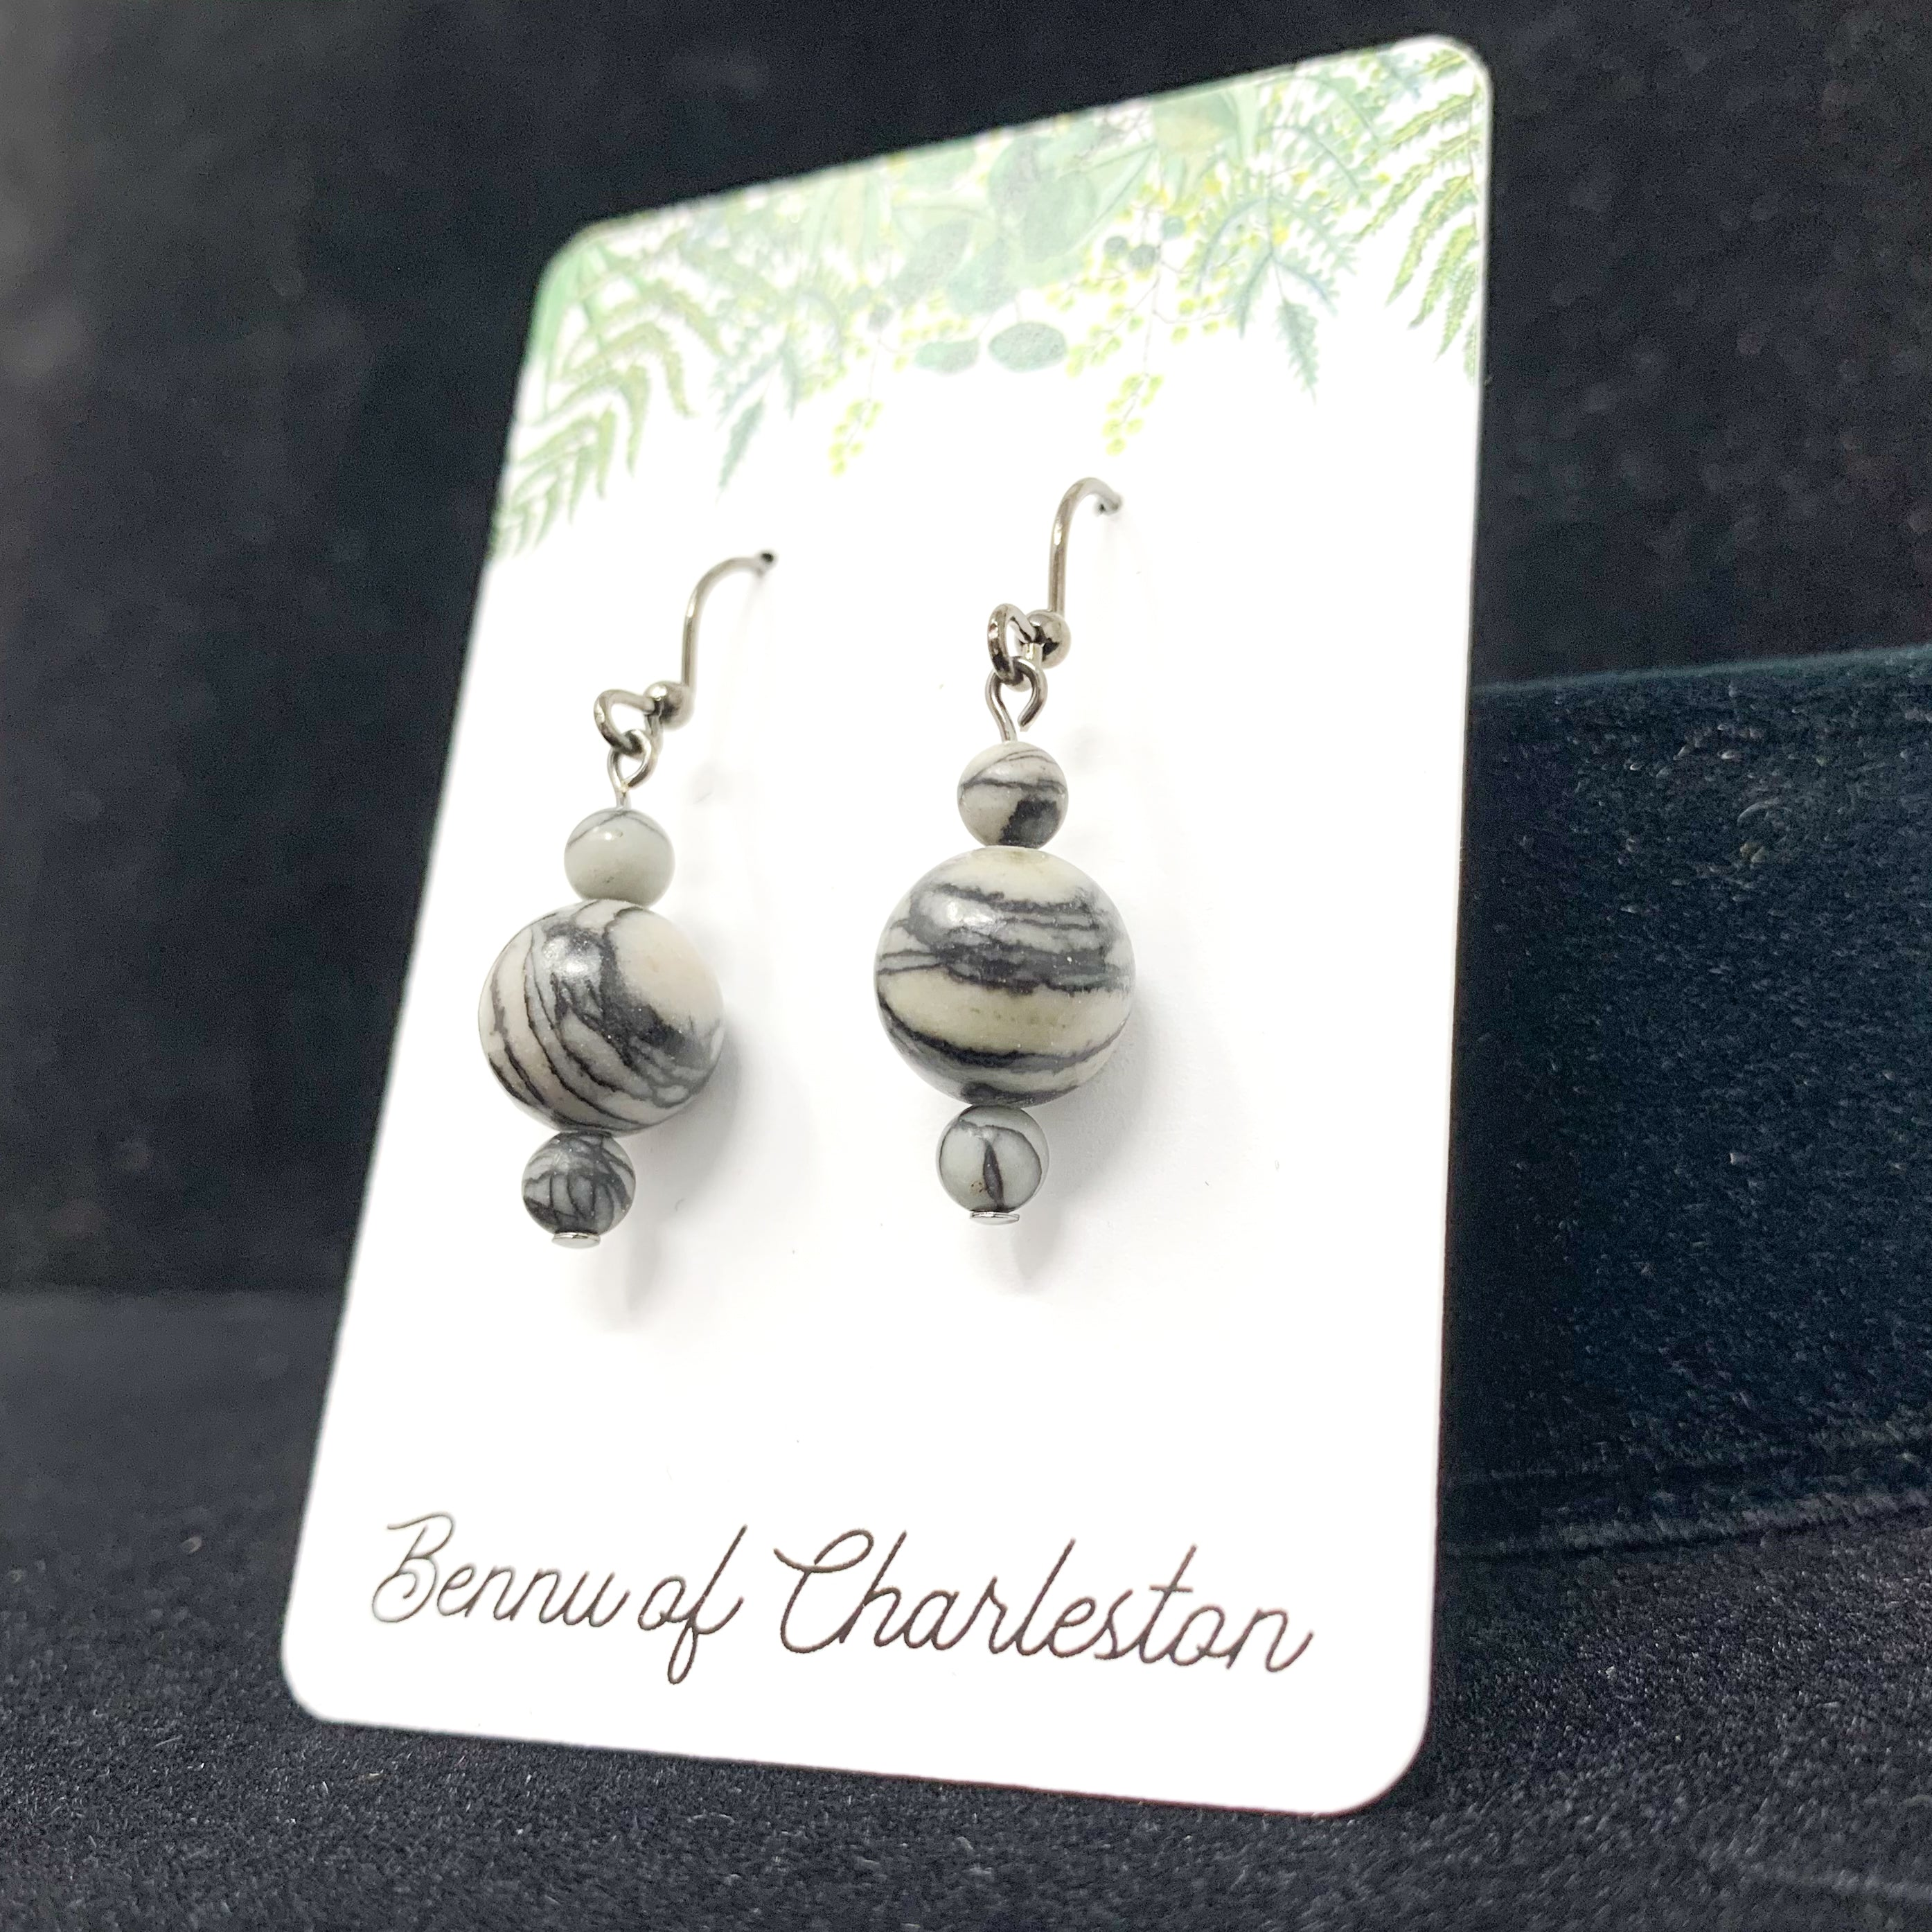 Spider Web Jasper Earrings by Bennu of Charleston